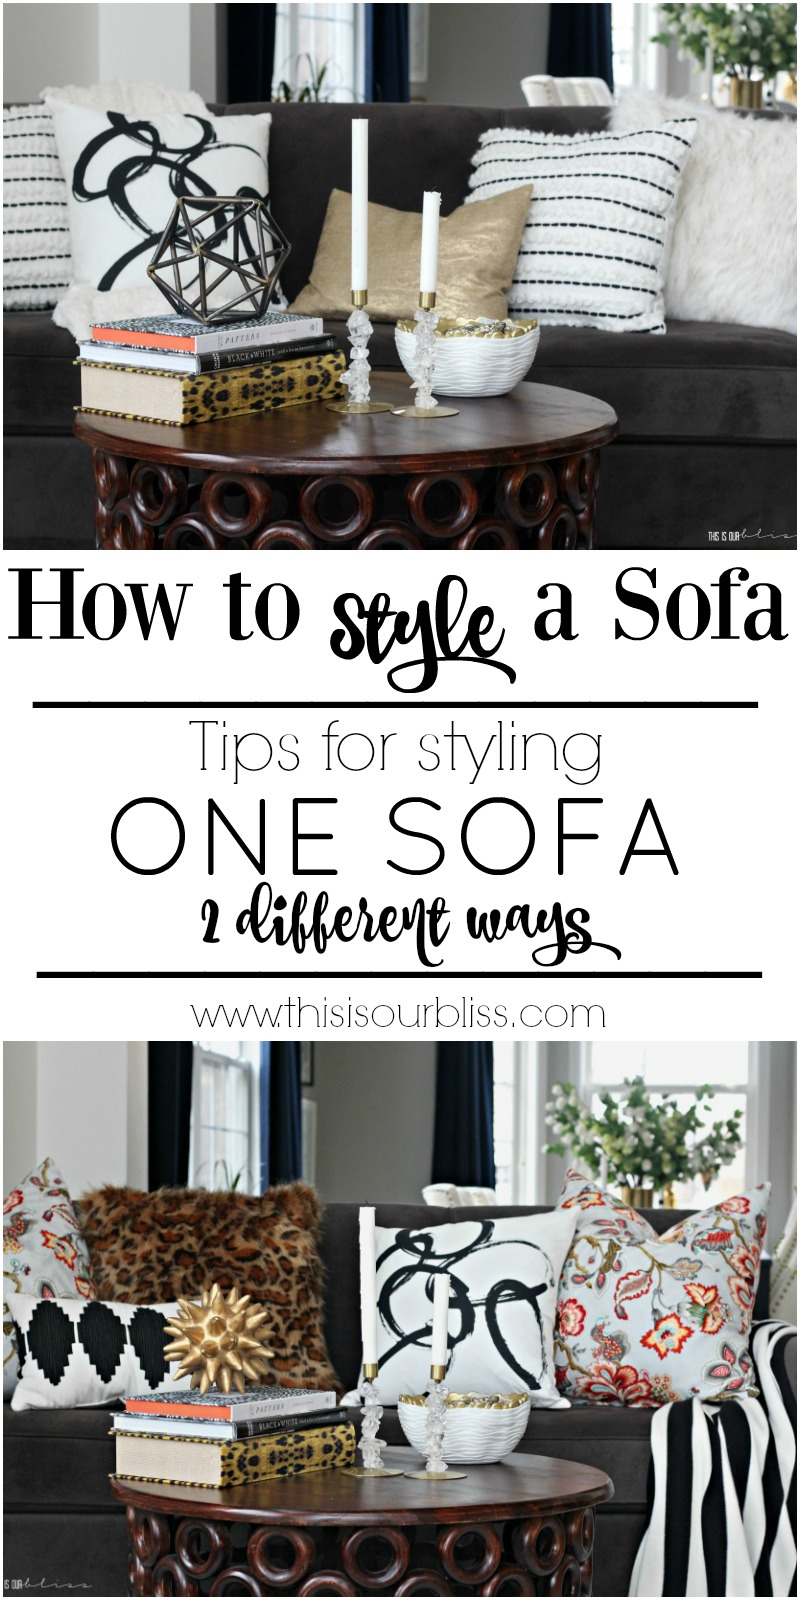 How to Style One Sofa, 2 Different Ways | Tips & Tricks for sofa styling! | This is our Bliss